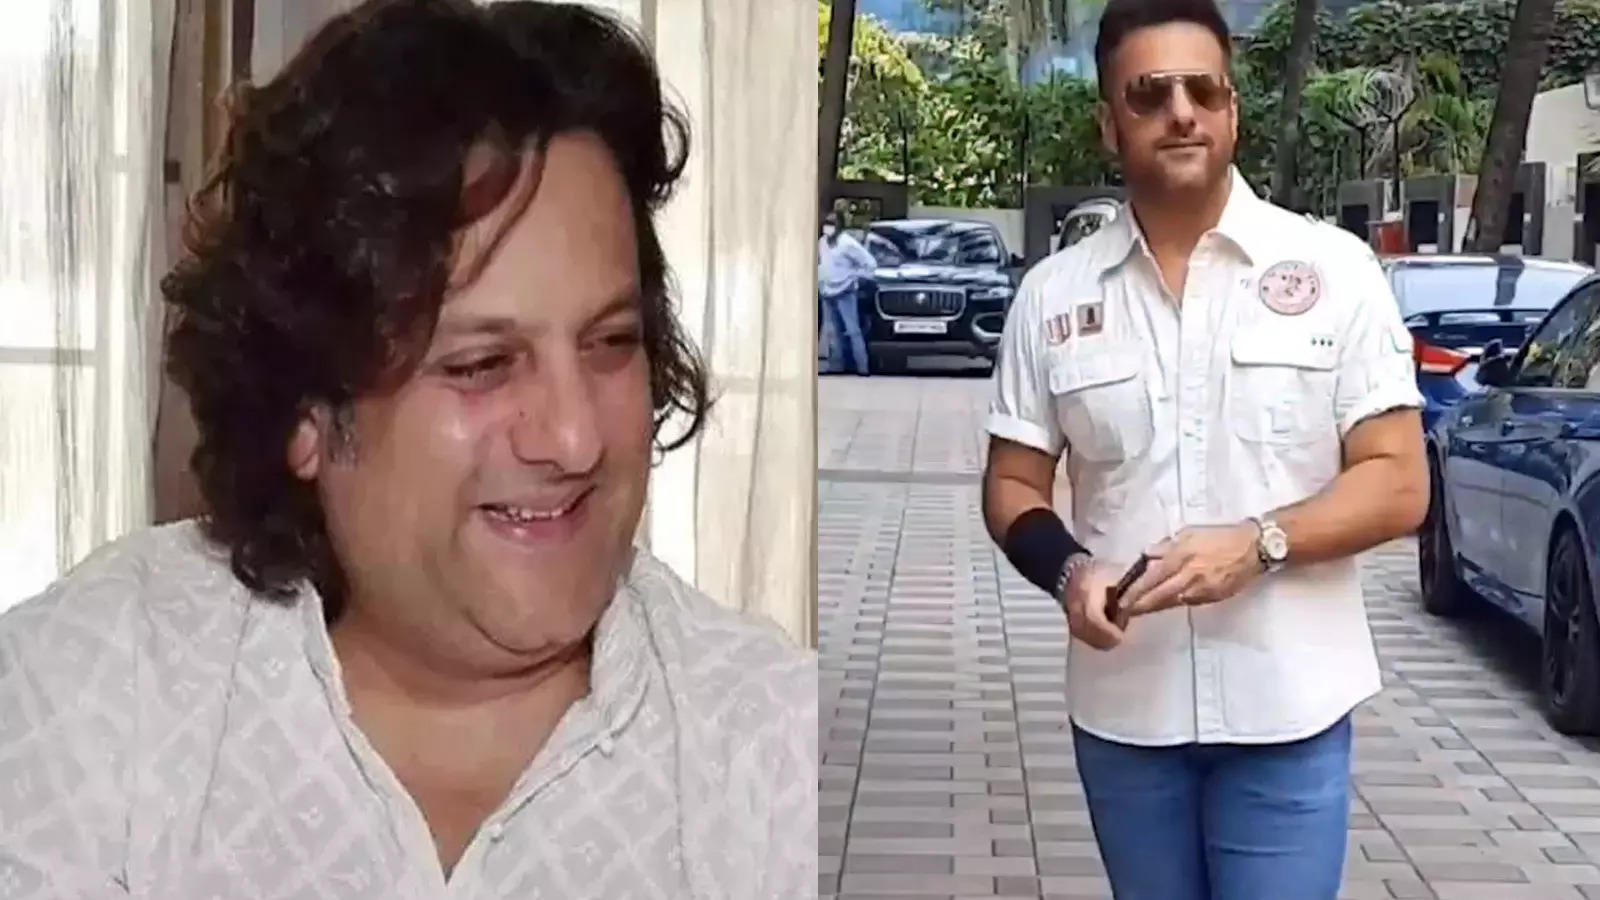 all-set-for-his-comeback-actor-fardeen-khan-impresses-netizens-yet-again-with-his-stunning-body-transformation